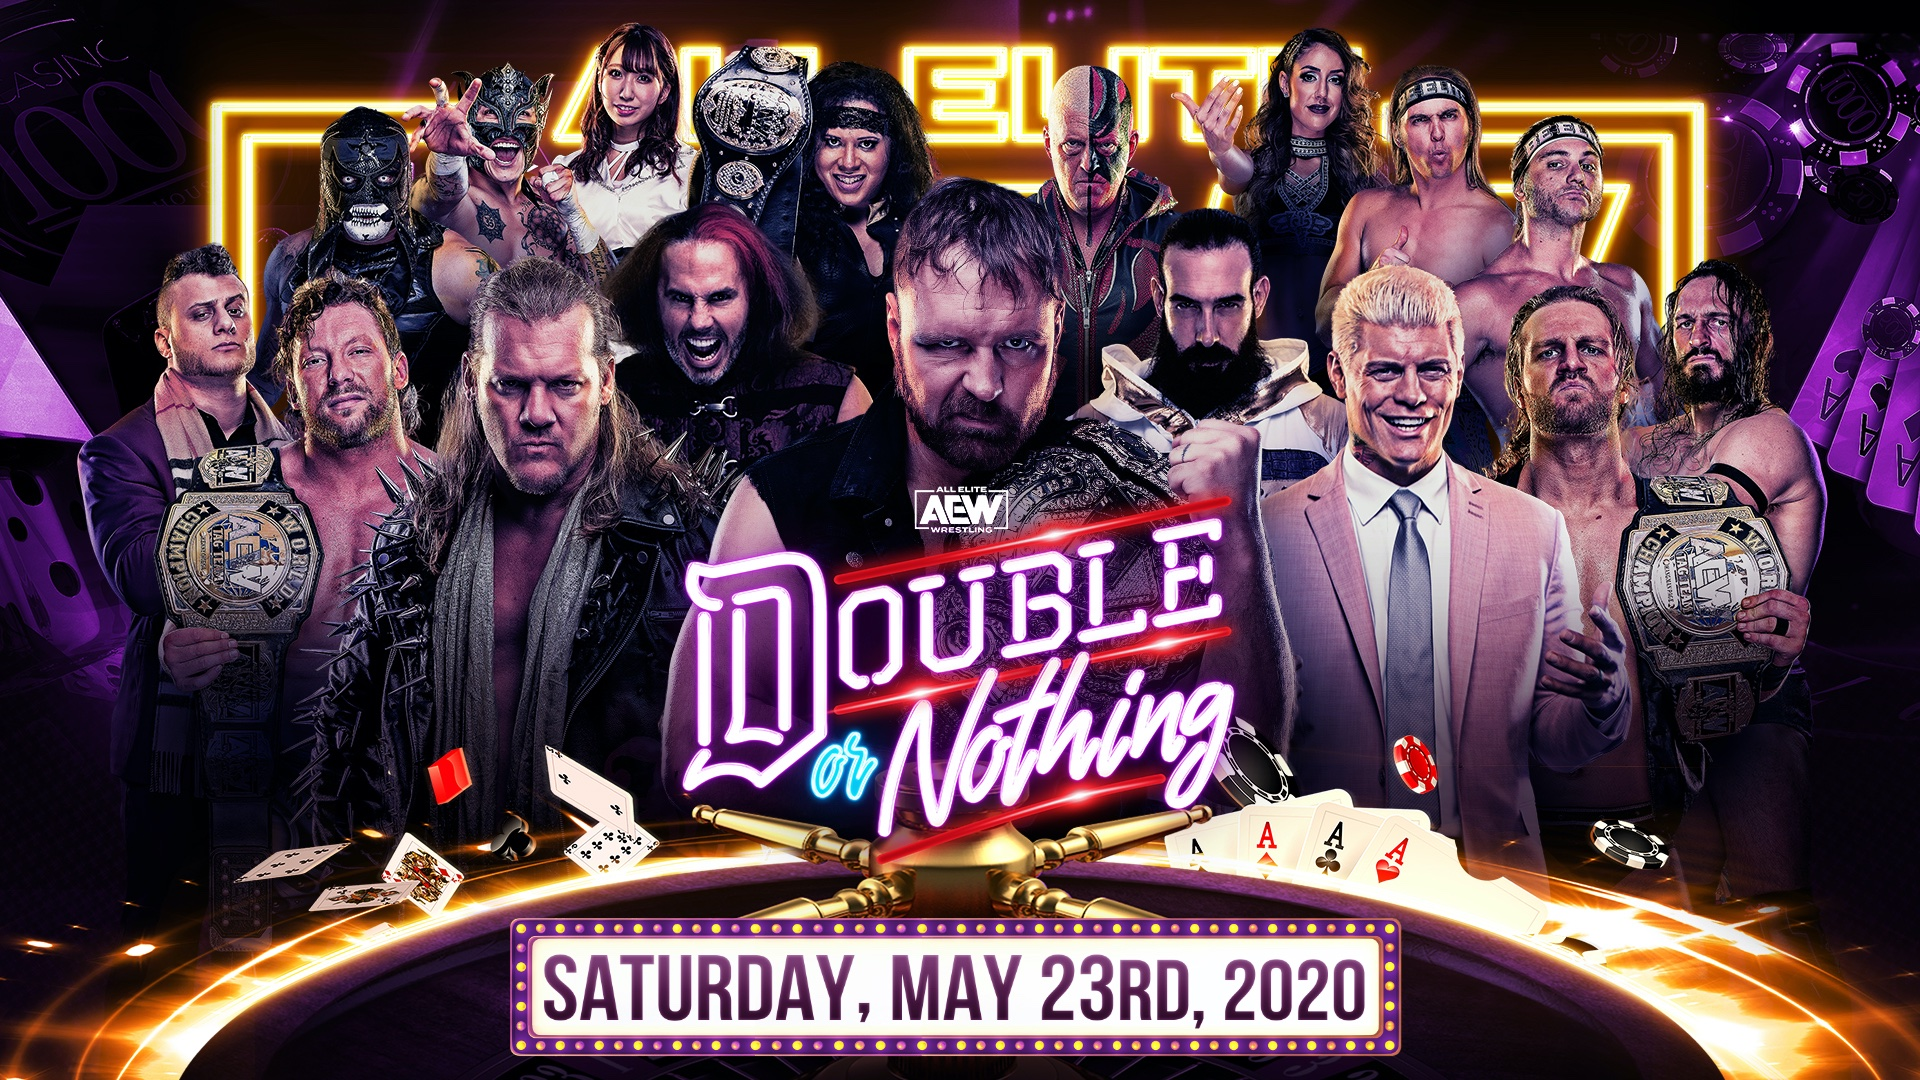 More additions to the AEW Double or Nothing 2020 lineup